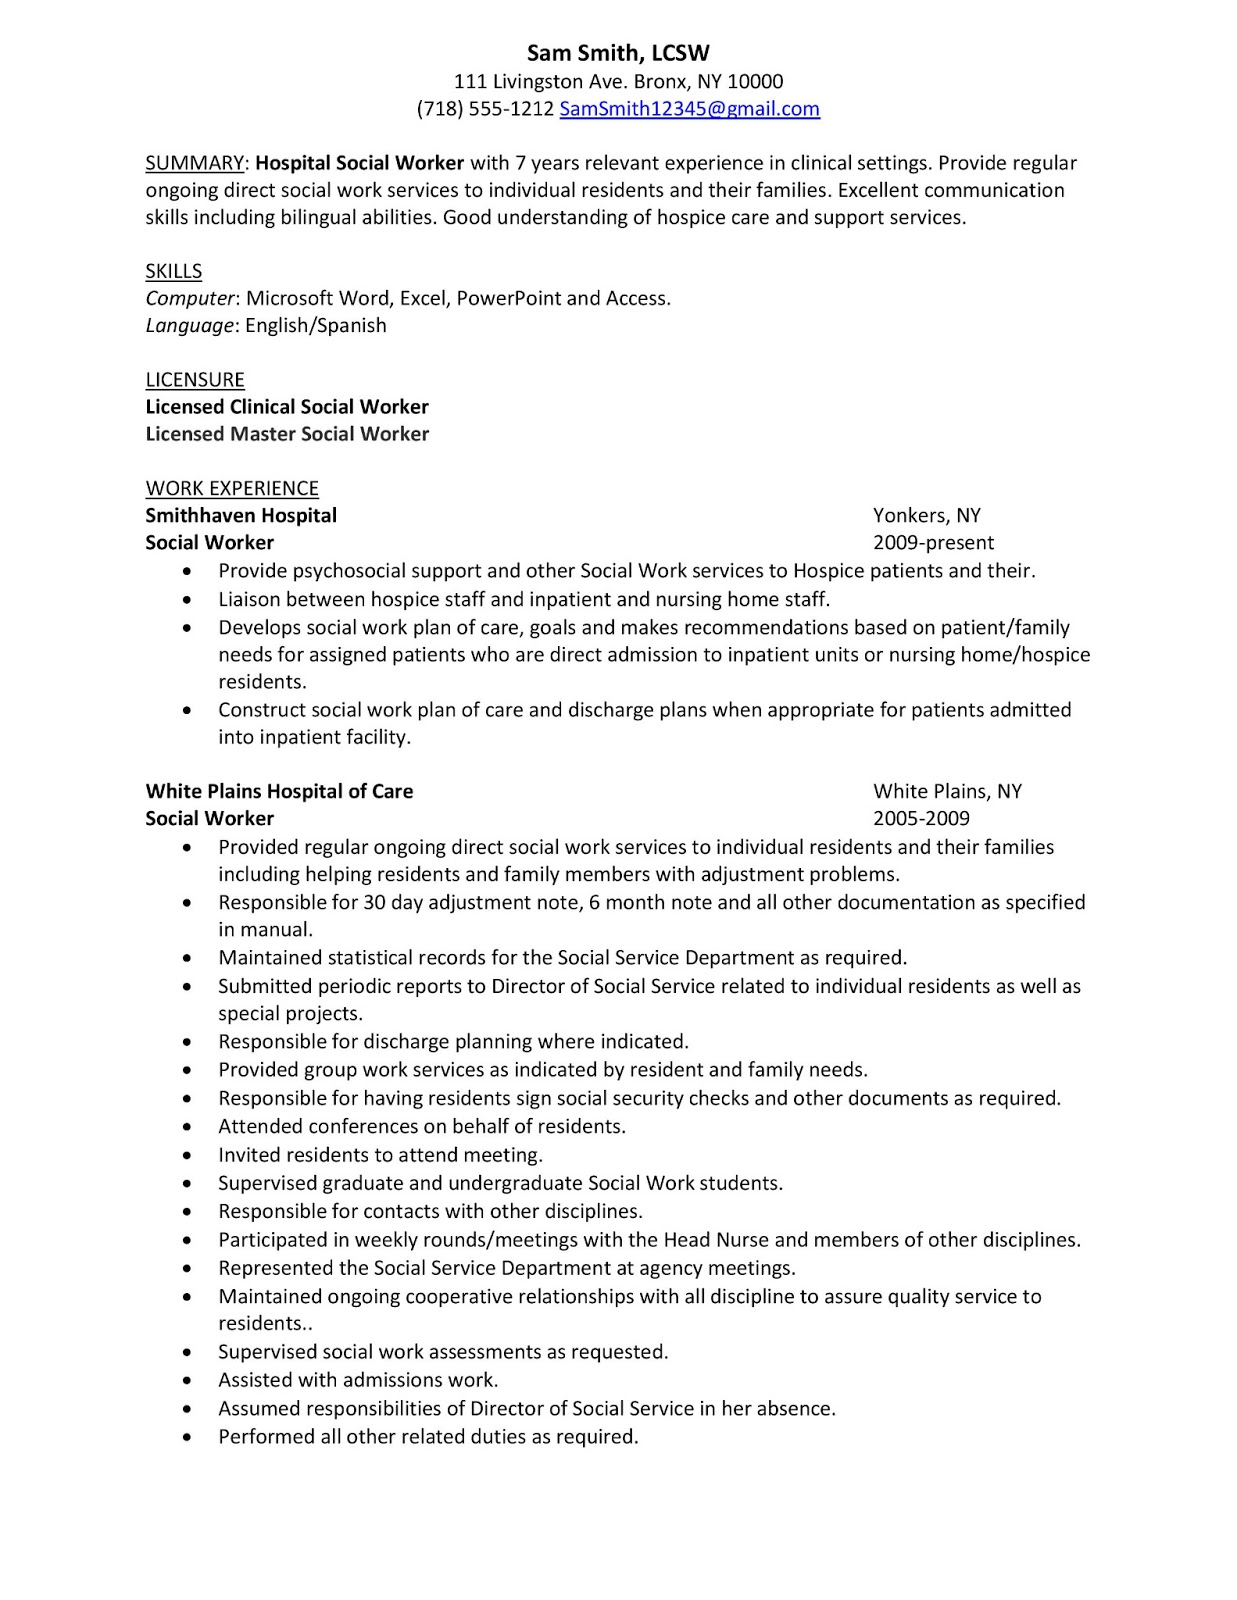 Good Sample Resume: Hospital Social Worker Intended For Sample Social Work Resume